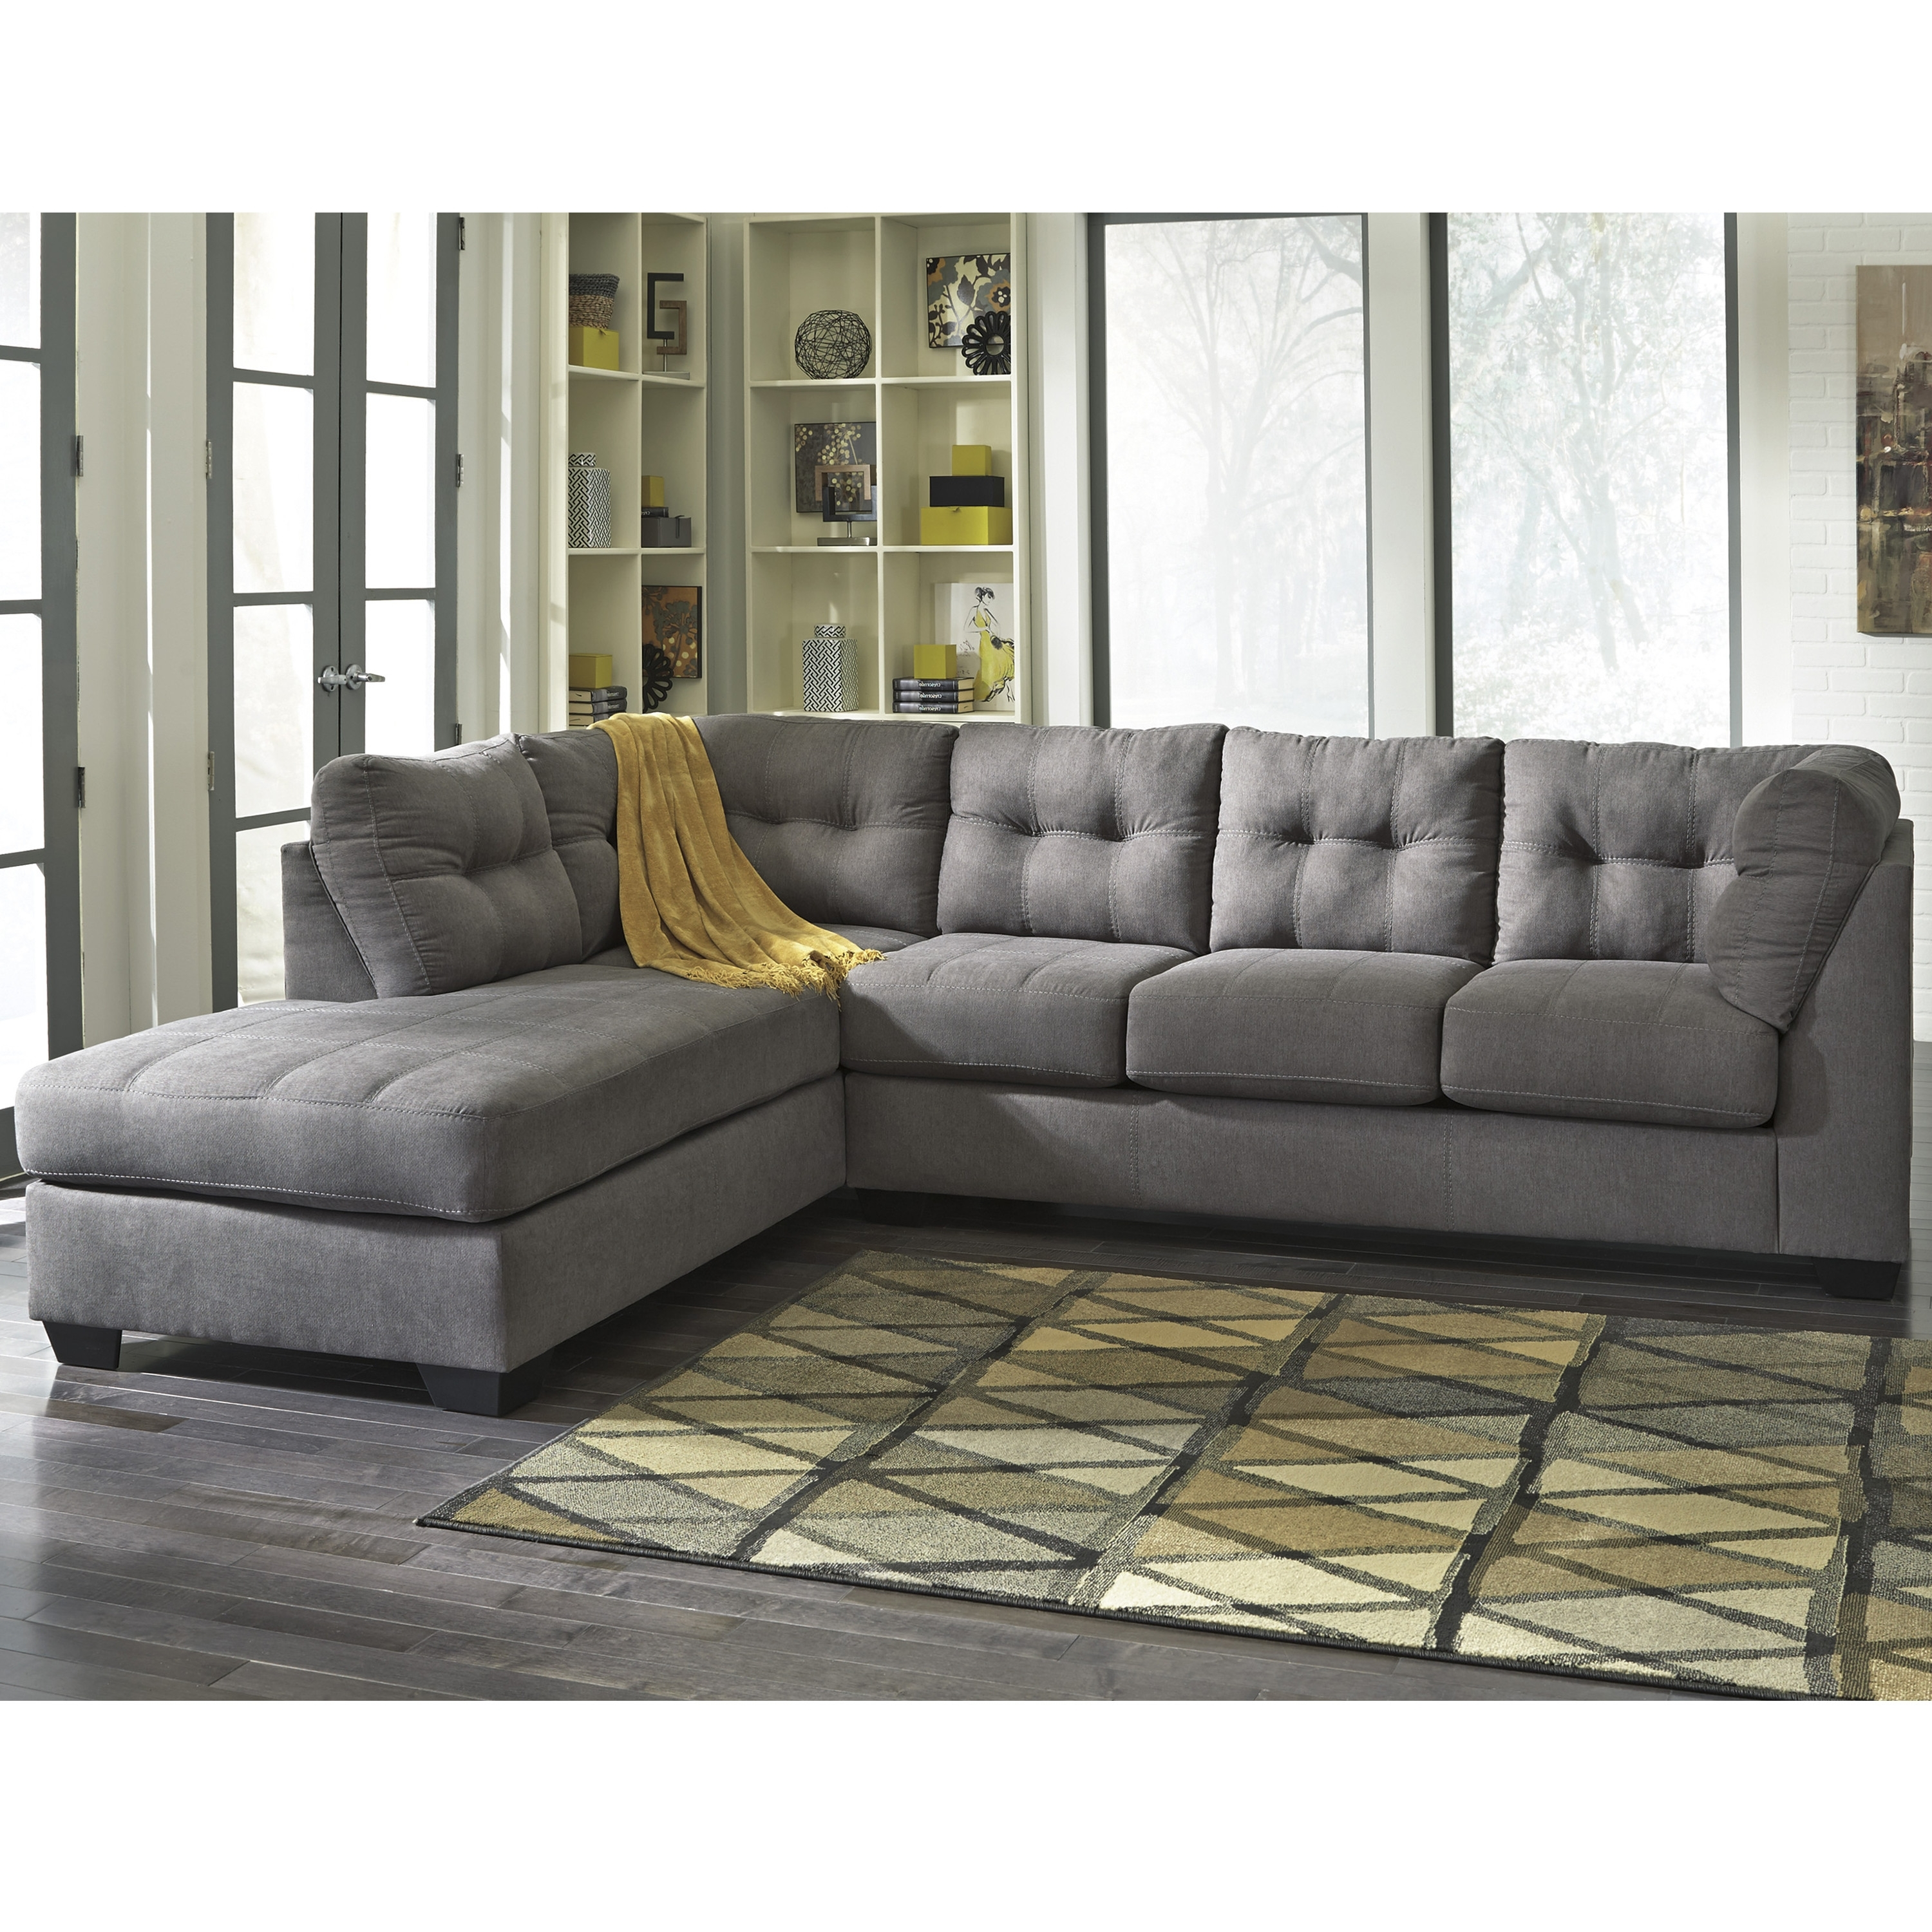 Furniture: Cool Cheap Sectional For Elegant Living Room Design Regarding Lucy Dark Grey 2 Piece Sleeper Sectionals With Laf Chaise (View 15 of 25)